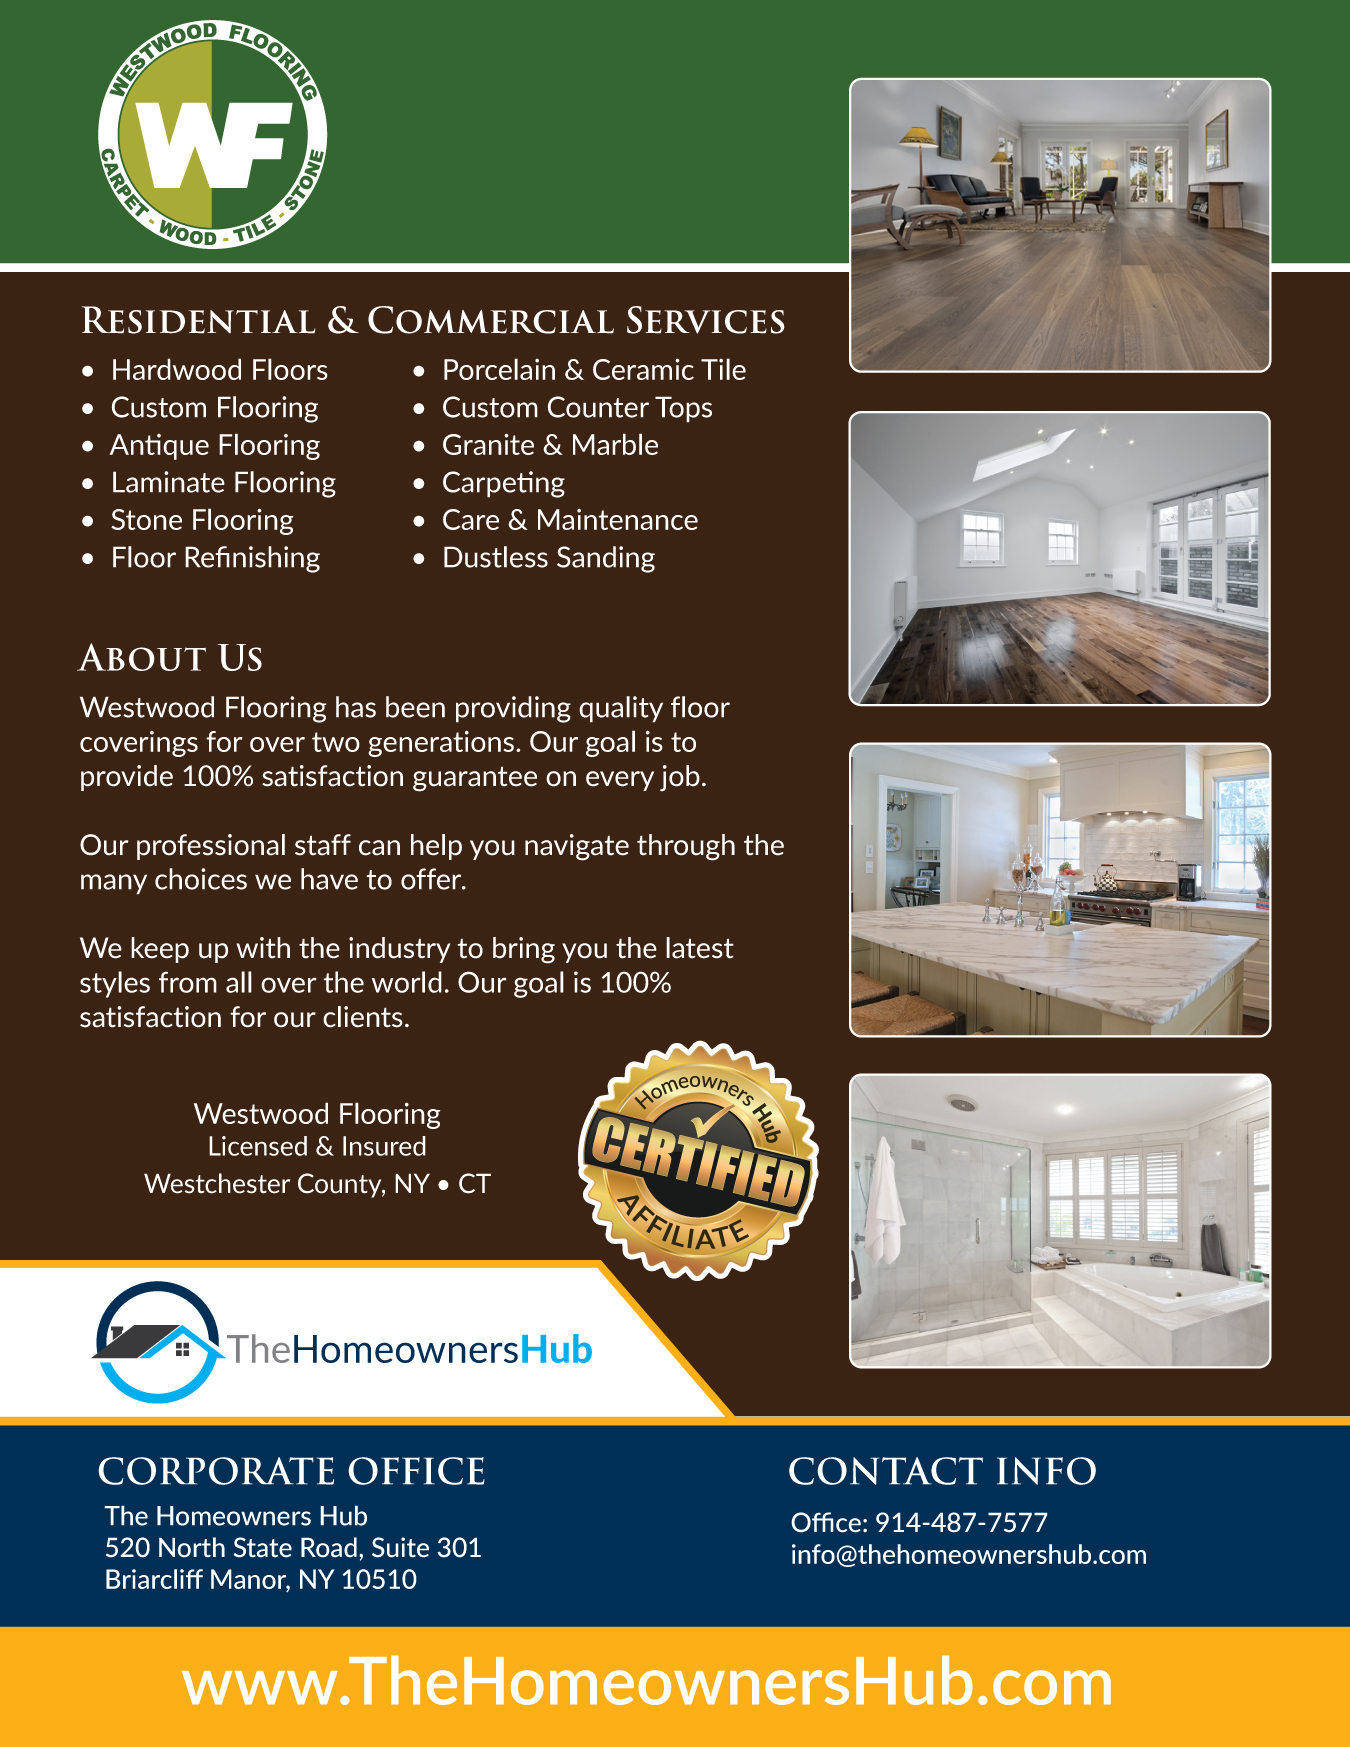 Westwood Flooring Services